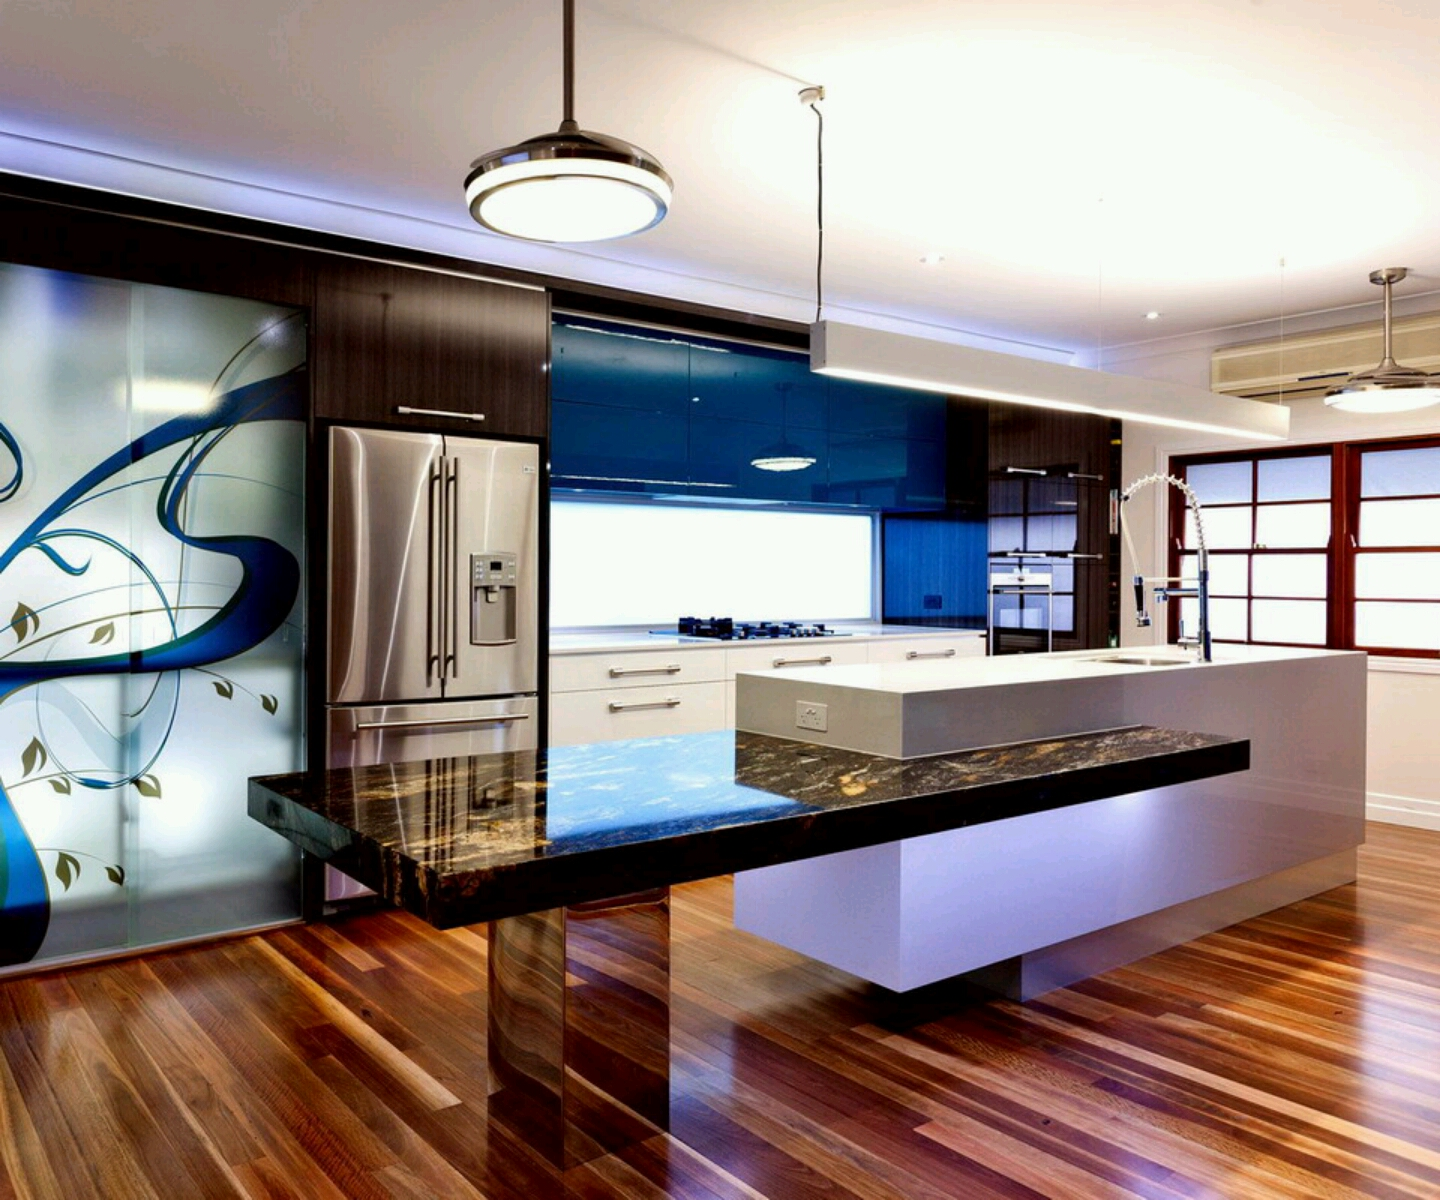 New home designs latest ultra modern kitchen designs ideas for Best new home ideas